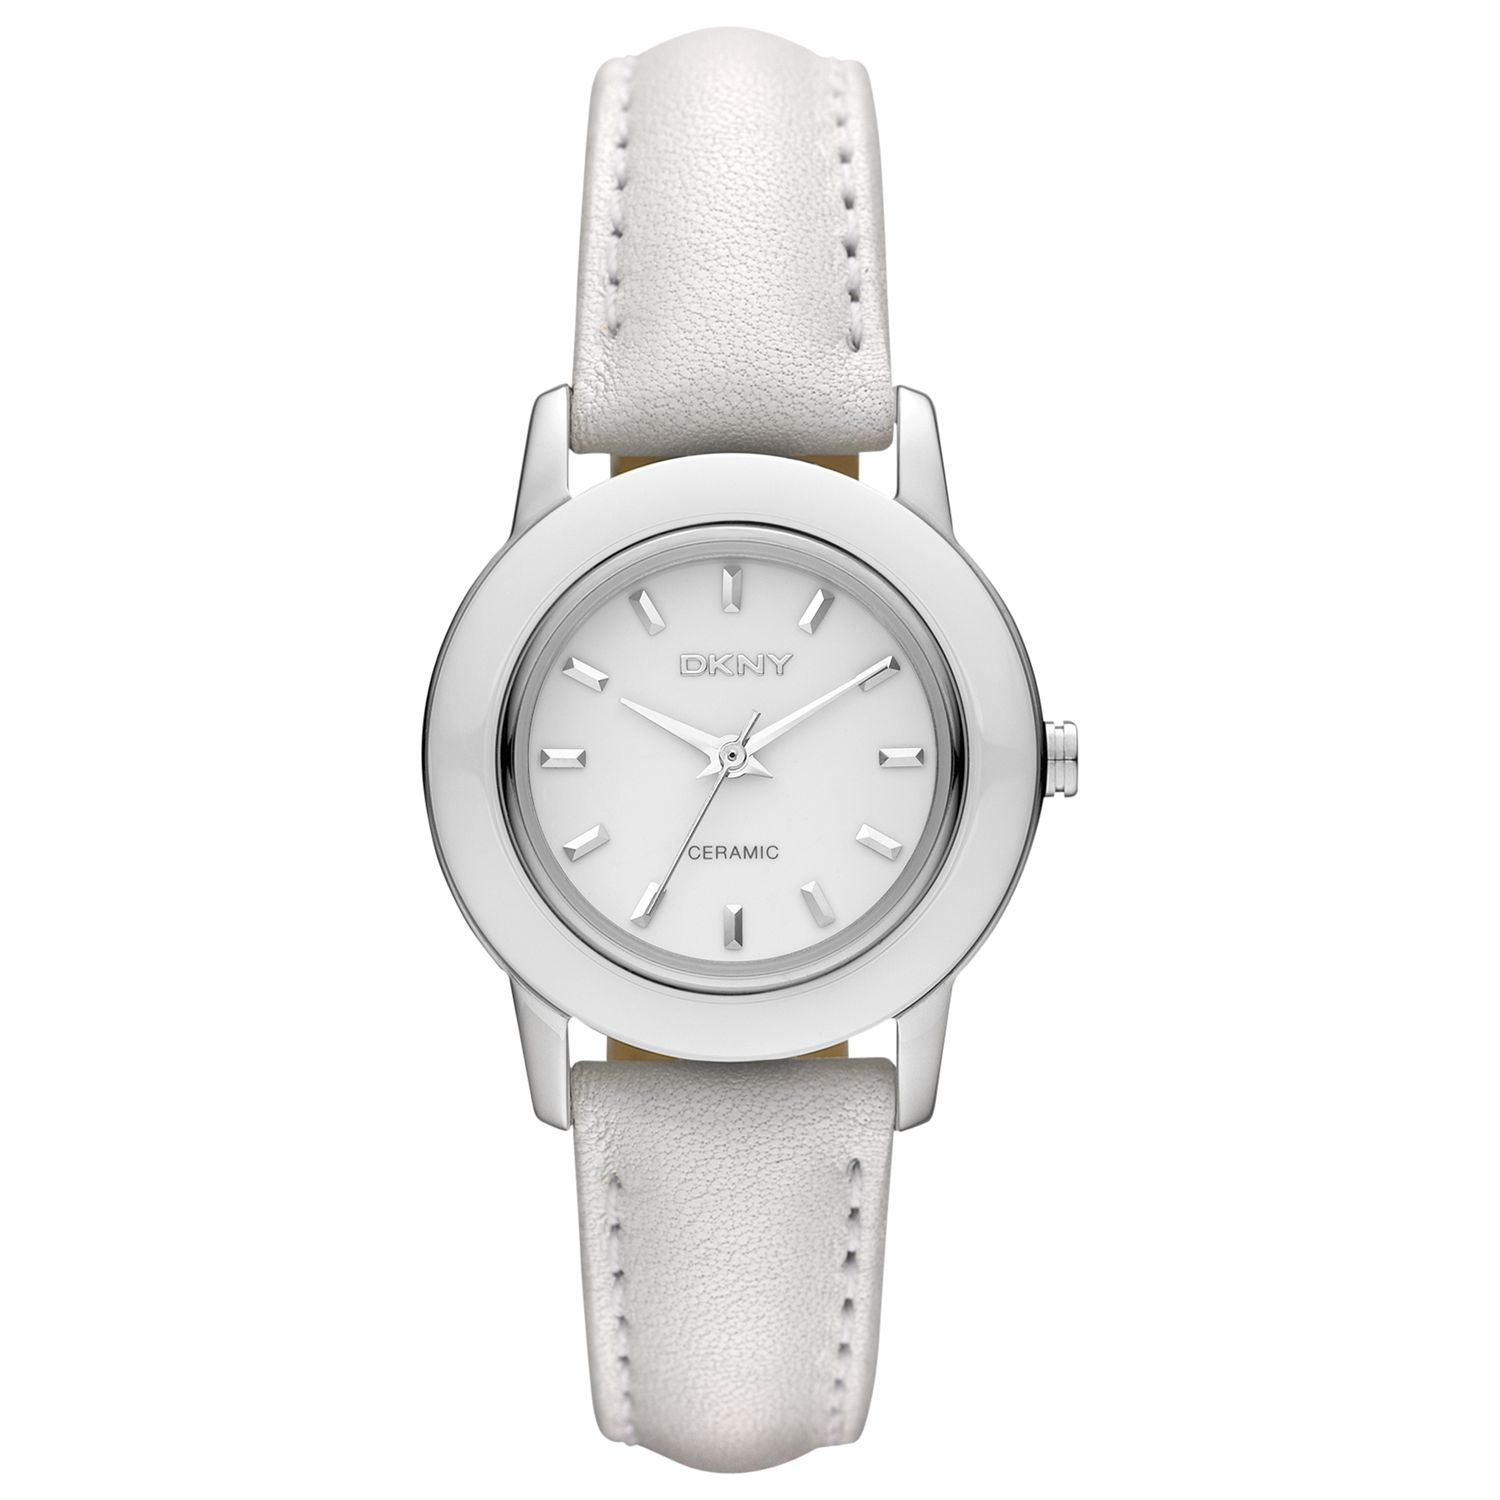 DKNY NY8638 Women's White Dial Leather Strap Watch, White